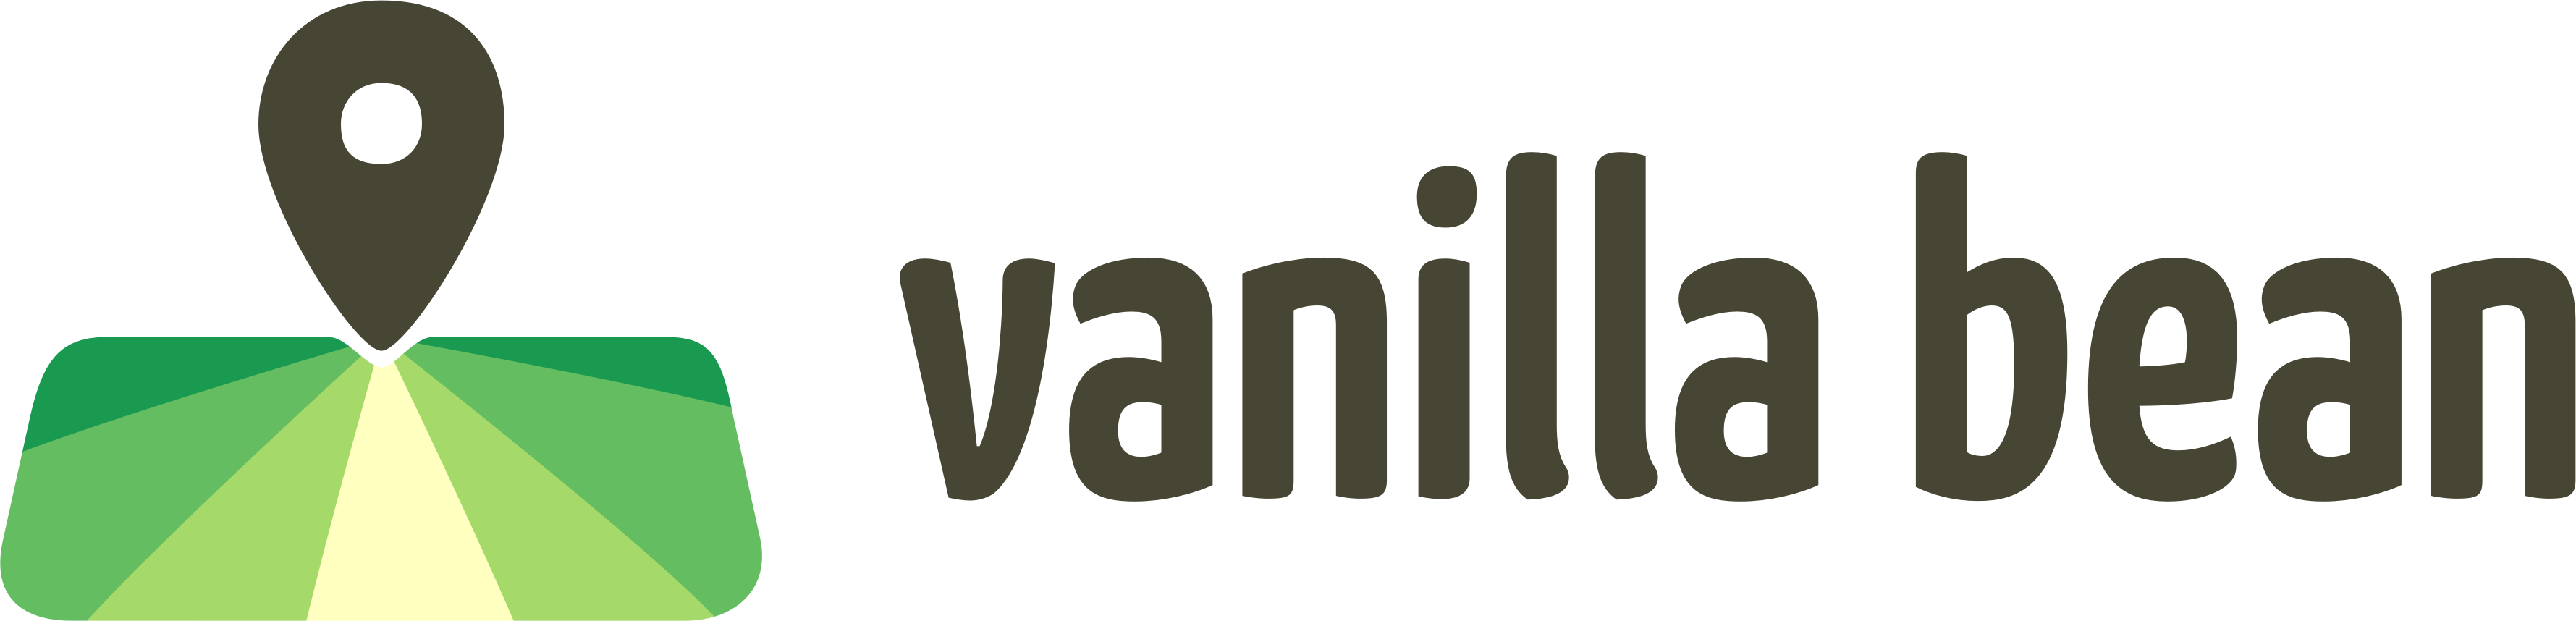 vanilla bean Help Center home page